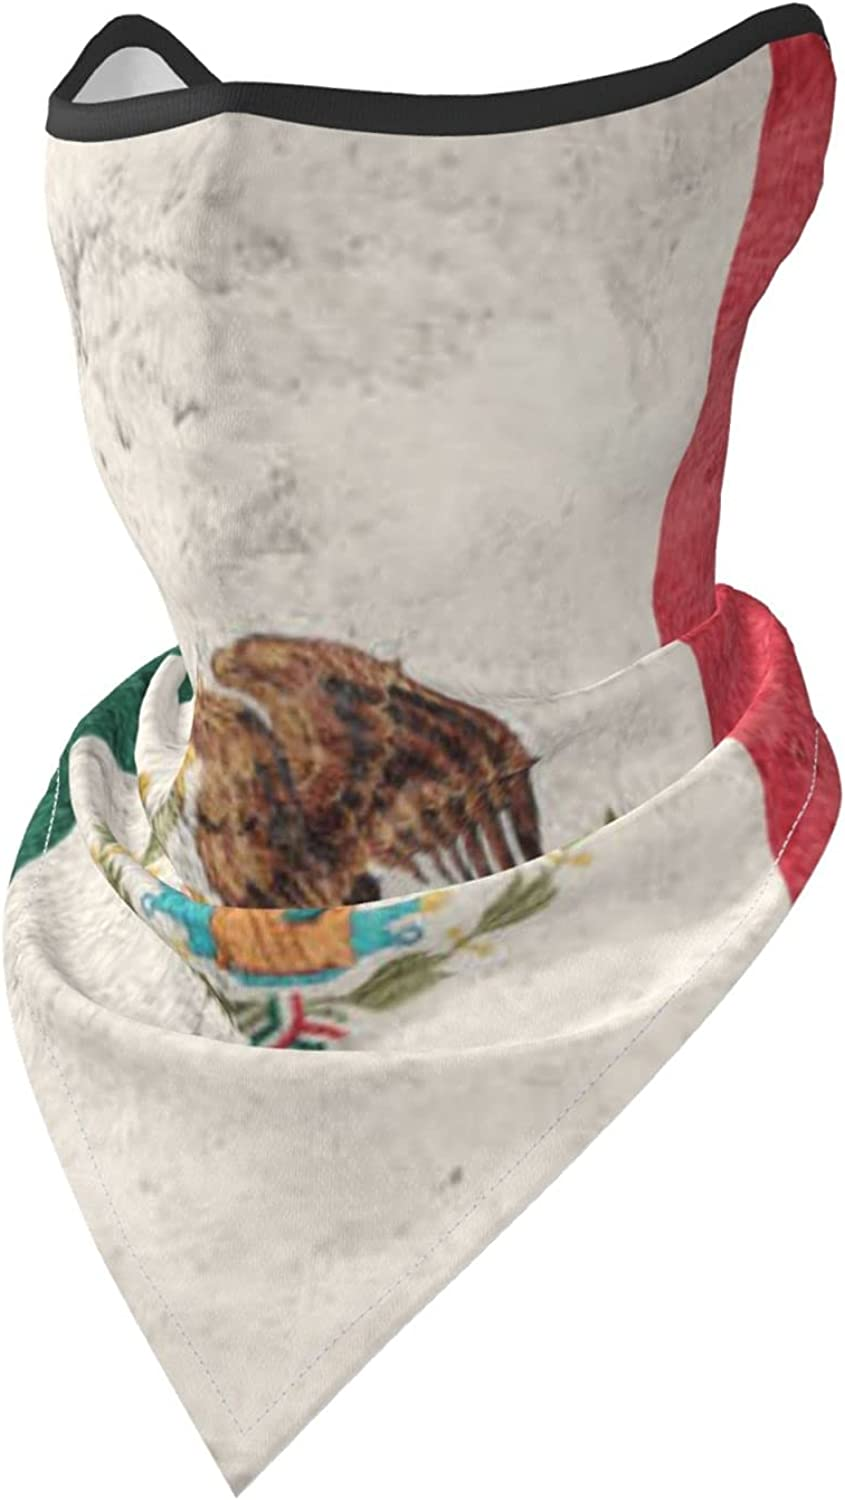 Grunge Mexico Flag Breathable Bandana Face Mask Neck Gaiter Windproof Sports Mask Scarf Headwear for Men Women Outdoor Hiking Cycling Running Motorcycling